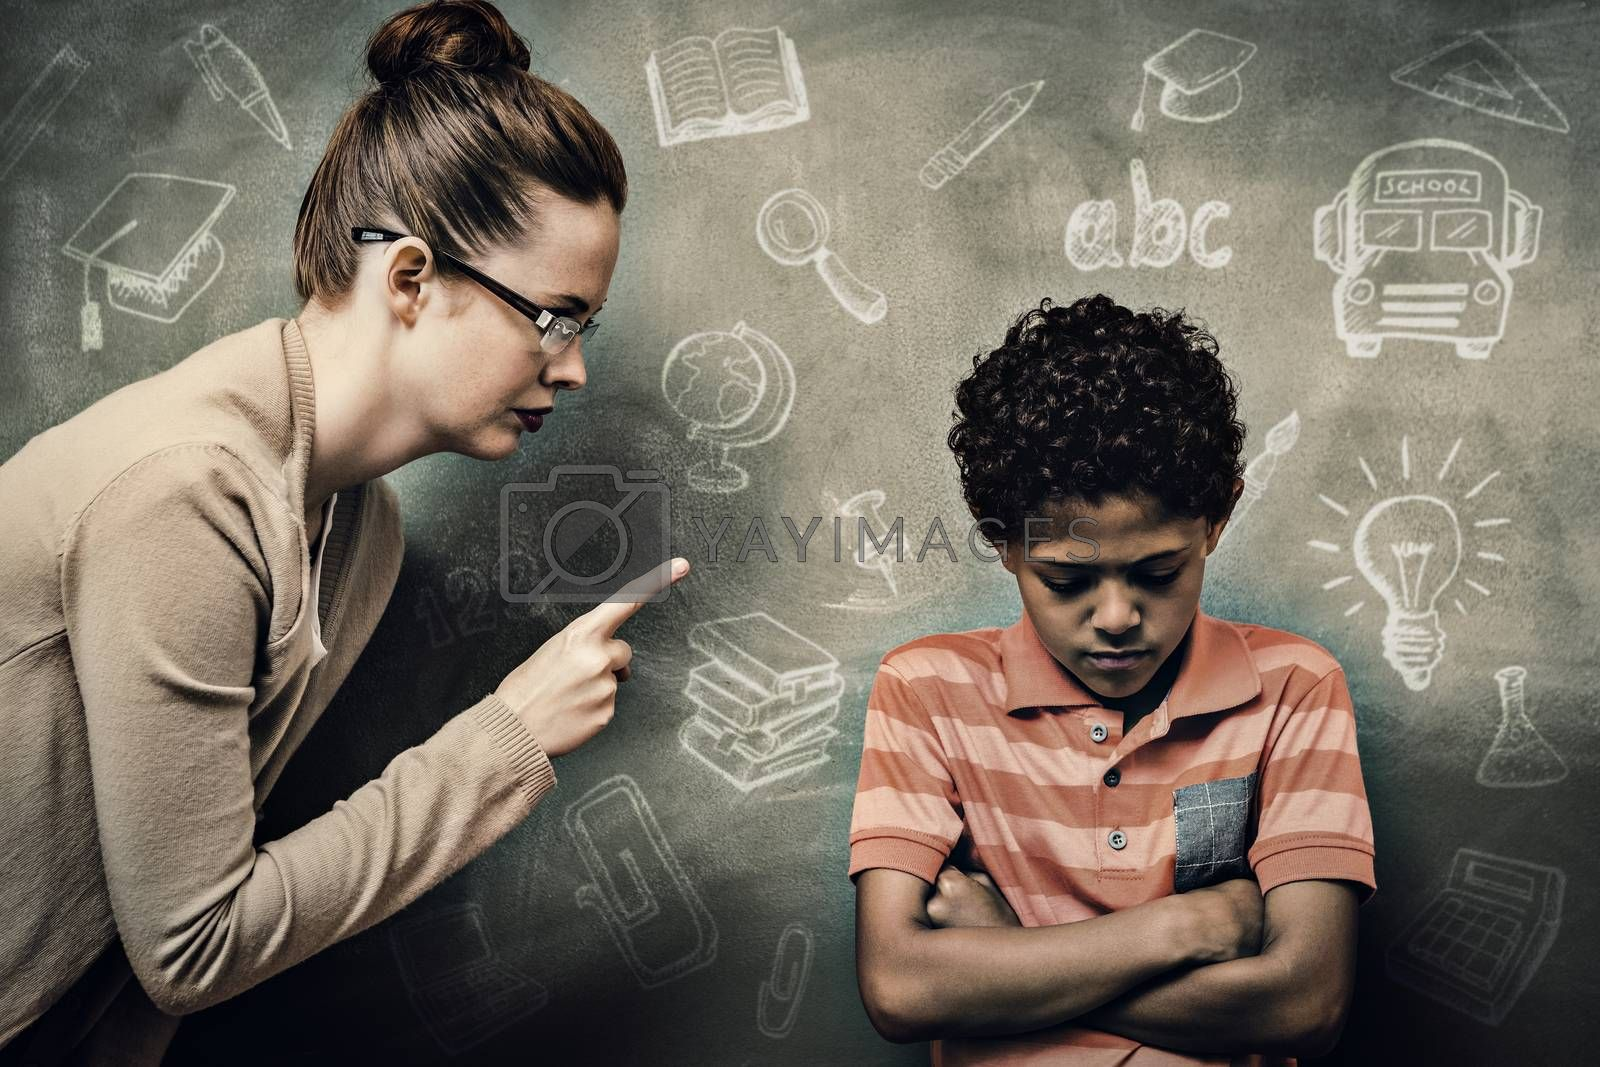 Education doodles against teacher shouting at boy in classroom